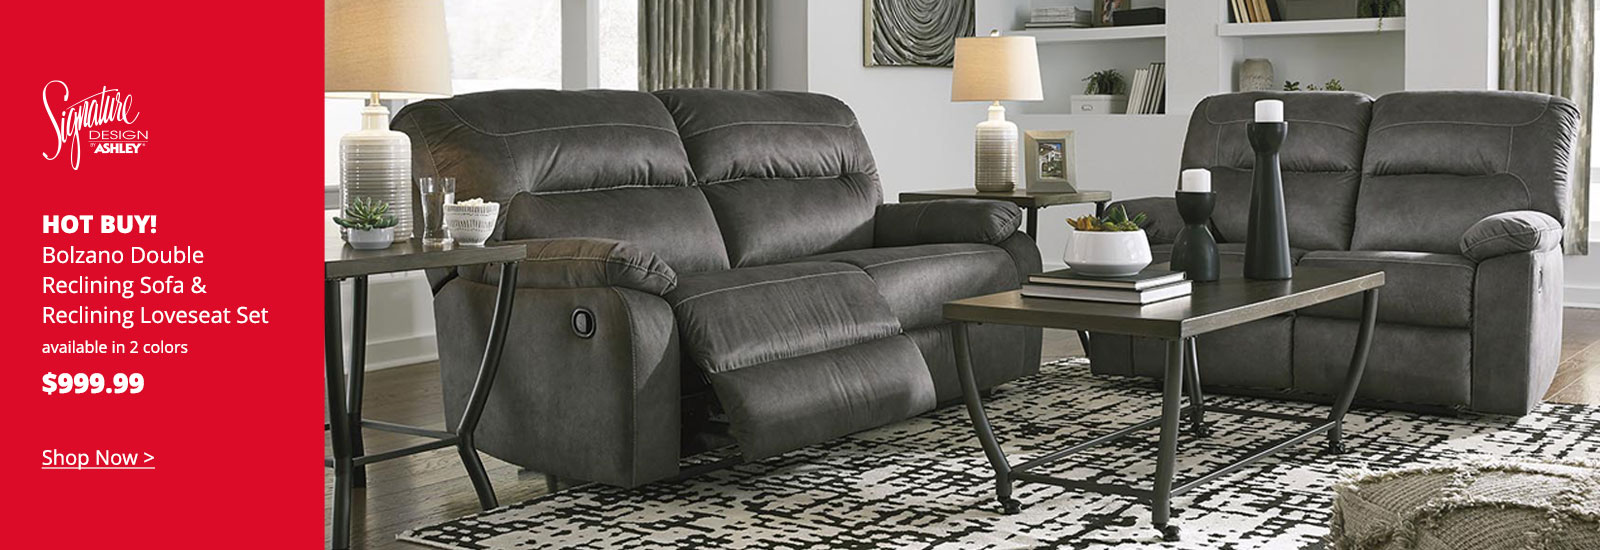 Bolzano Reclining Hot Buy